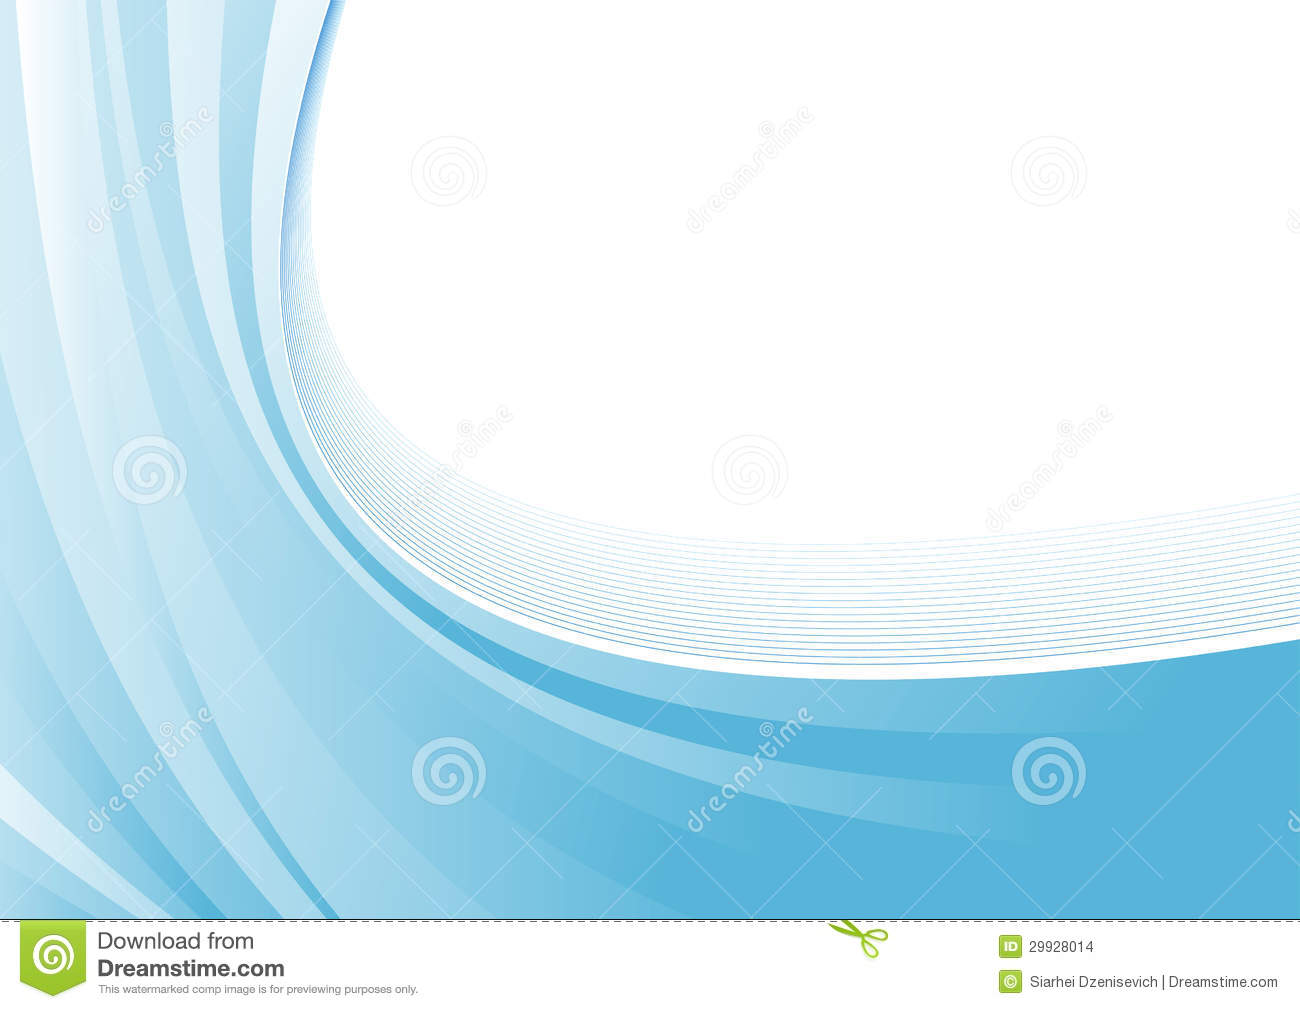 Certificate Or Diploma Layout Stock Images - Image: 29928014